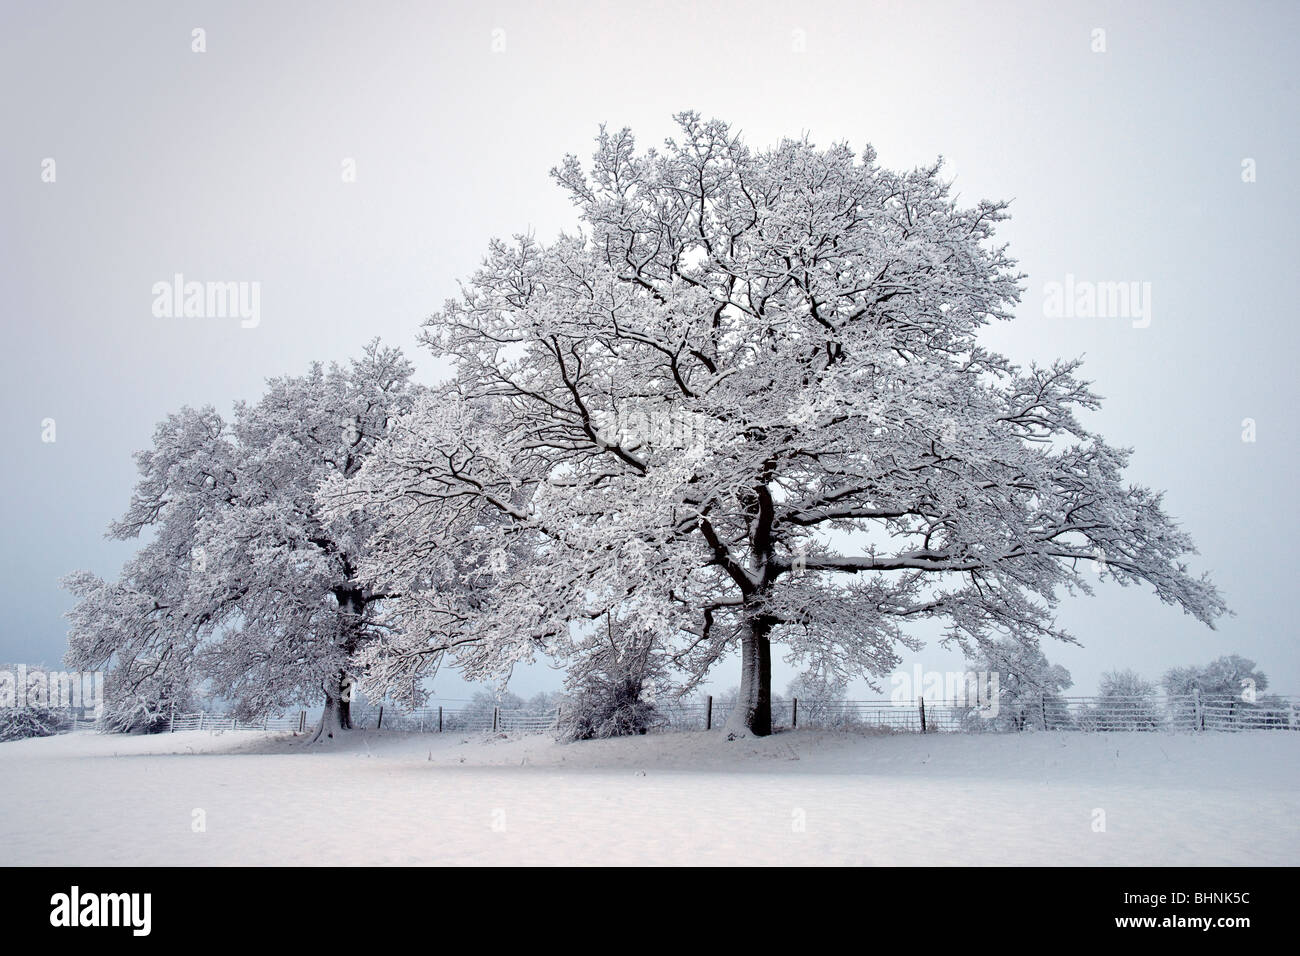 Trees in the Chiltern Hills, near High Wycombe. December snow 2009 - Stock Image